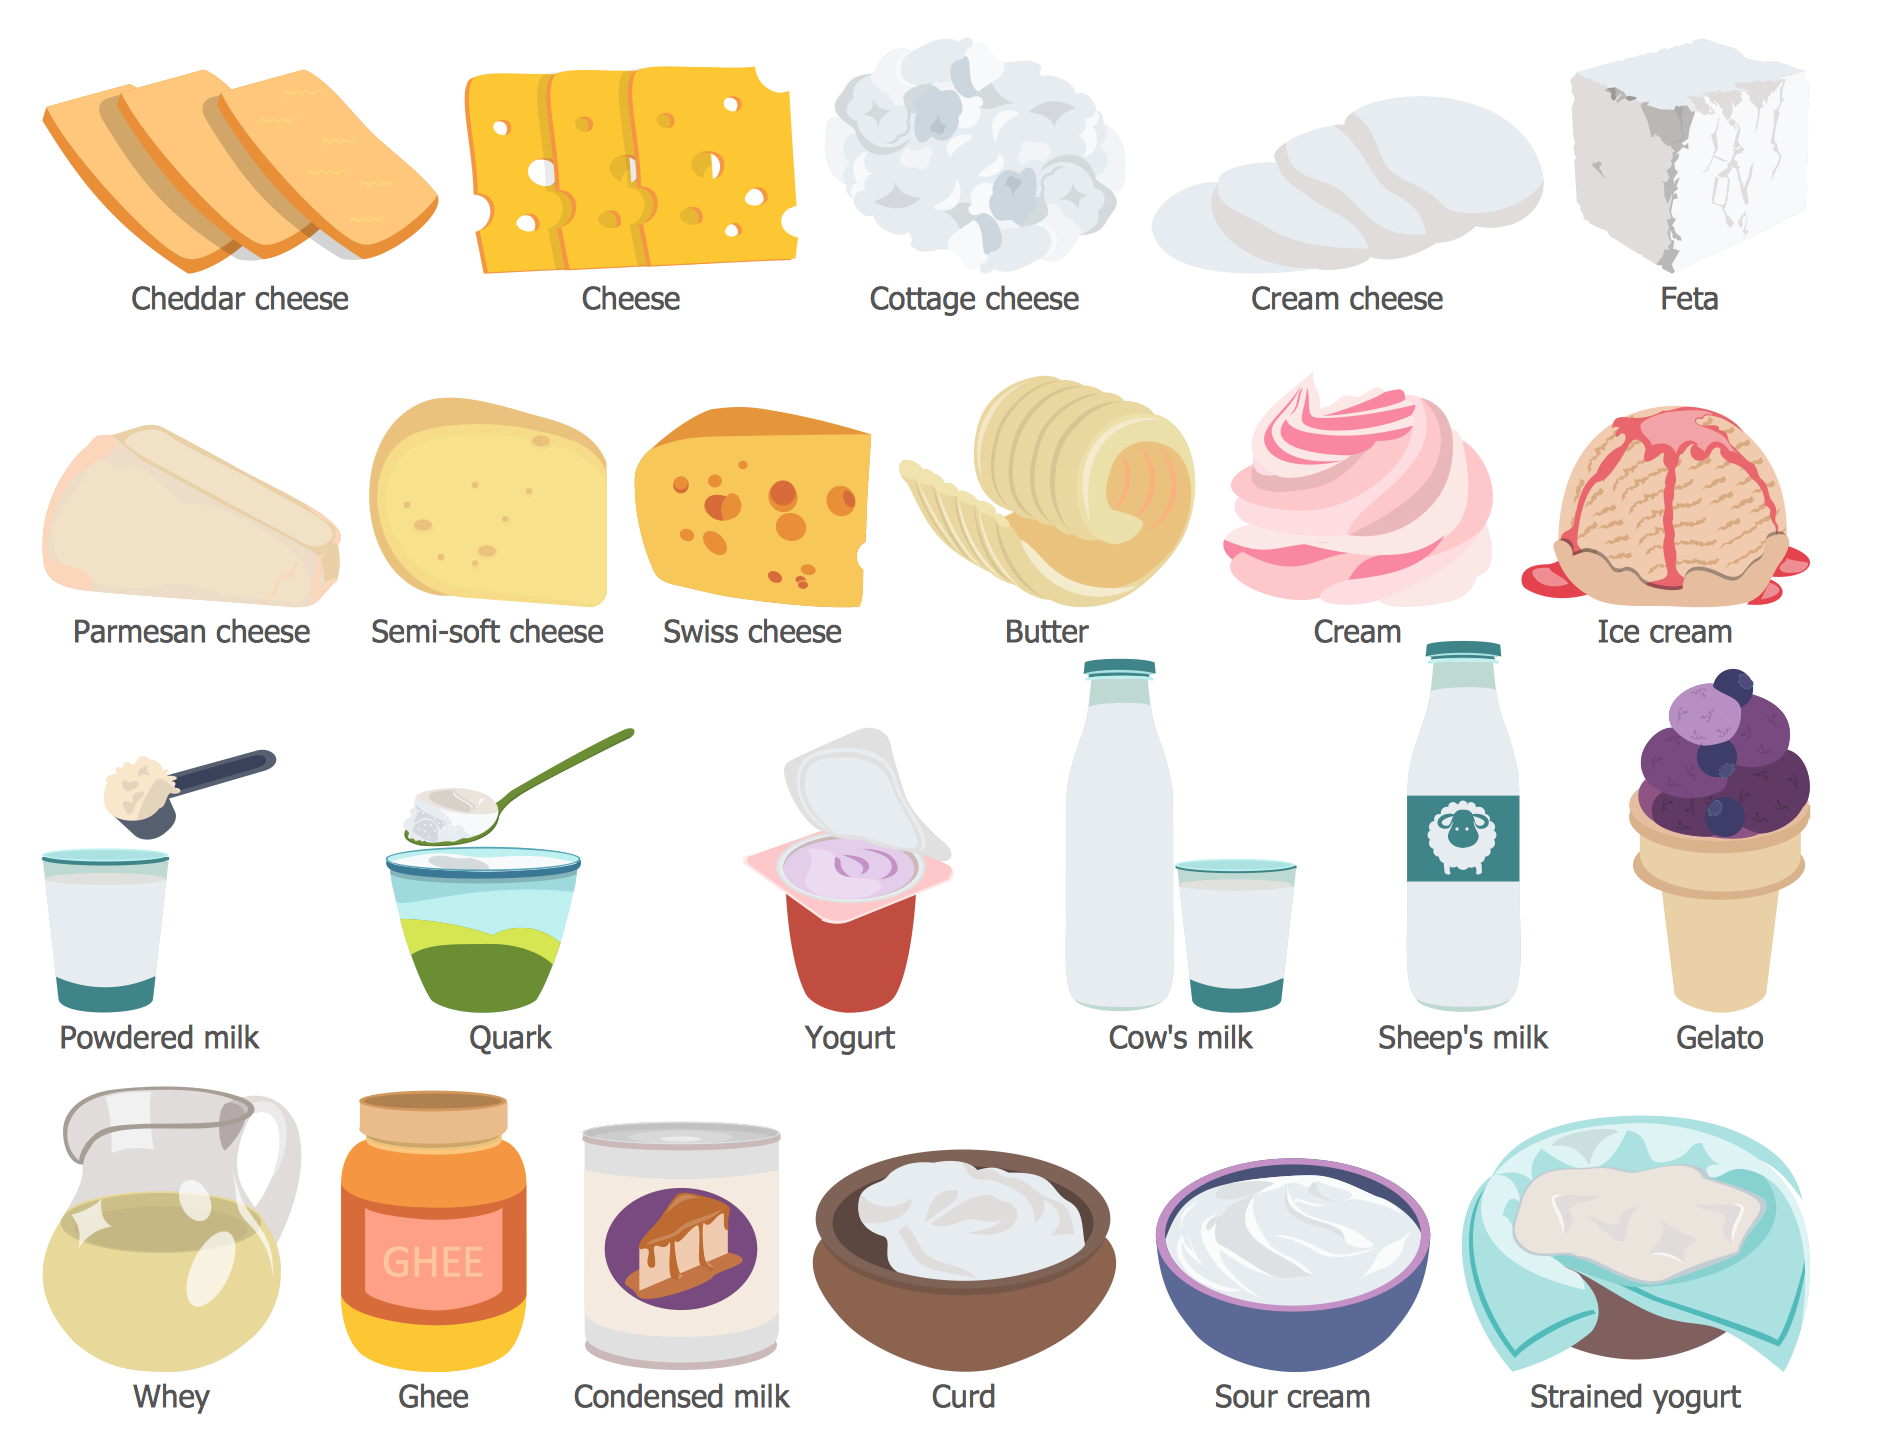 Health Food Solution | ConceptDraw.com